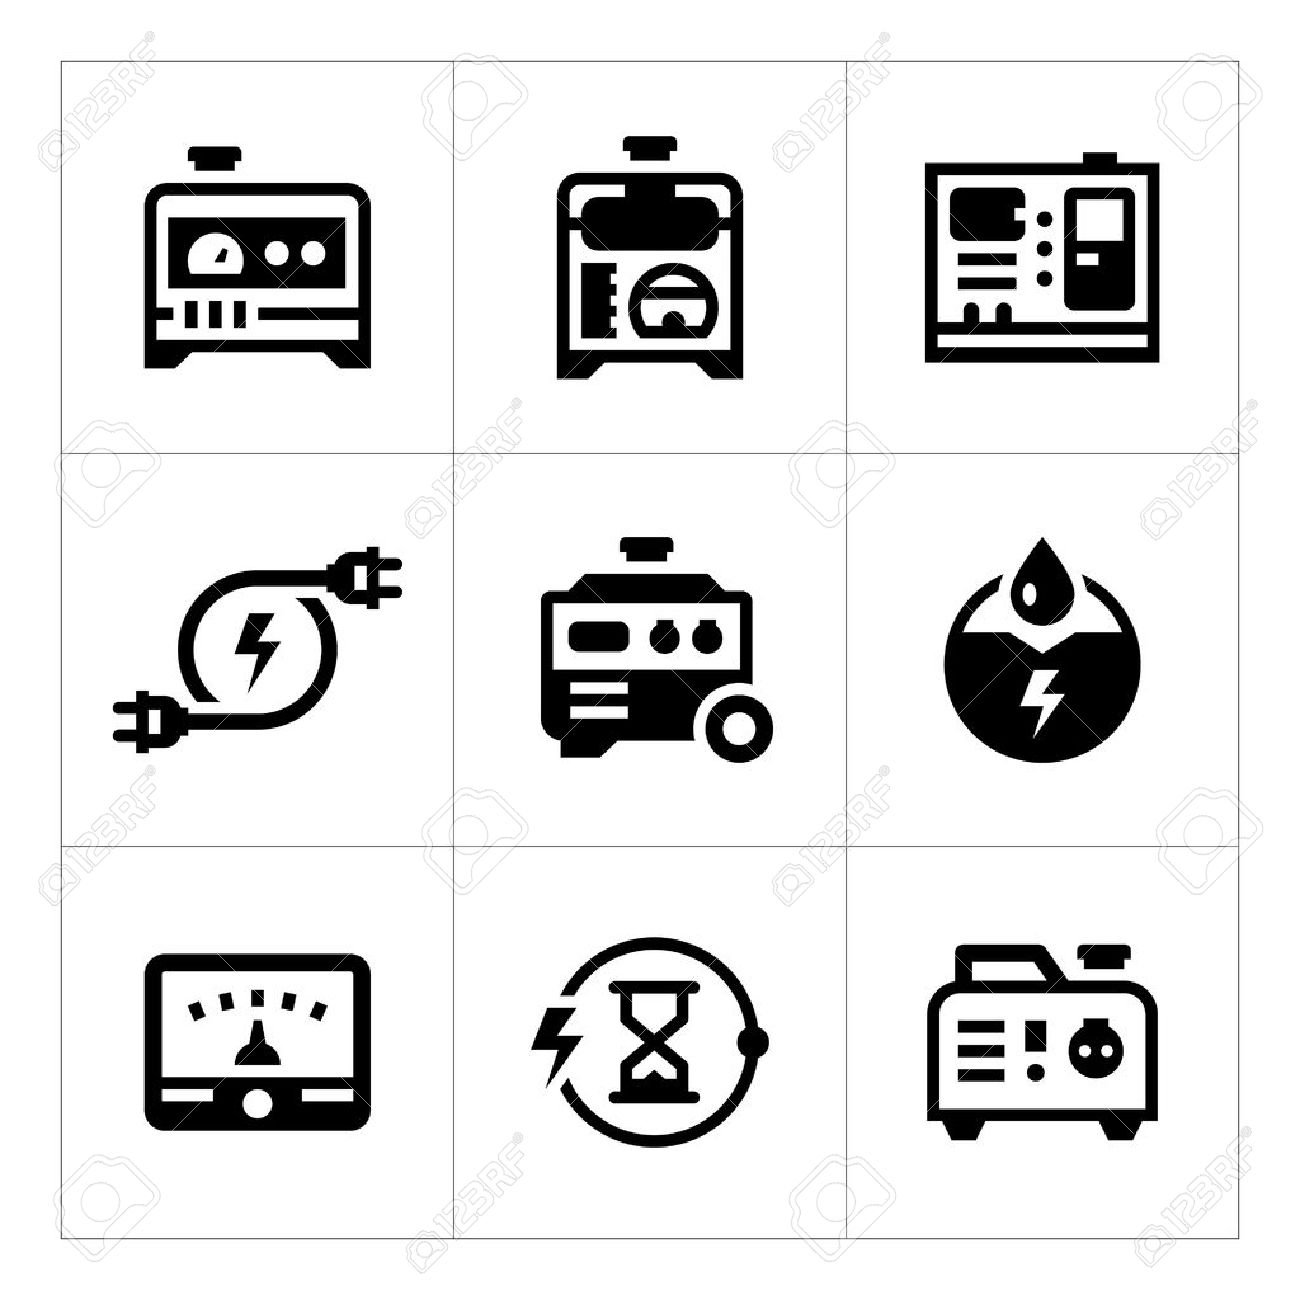 53426149 Set icons of electrical generator isolated on white Vector illustration Stock Vector electric generator symbol dolgular com aggreko generator wiring diagram at panicattacktreatment.co